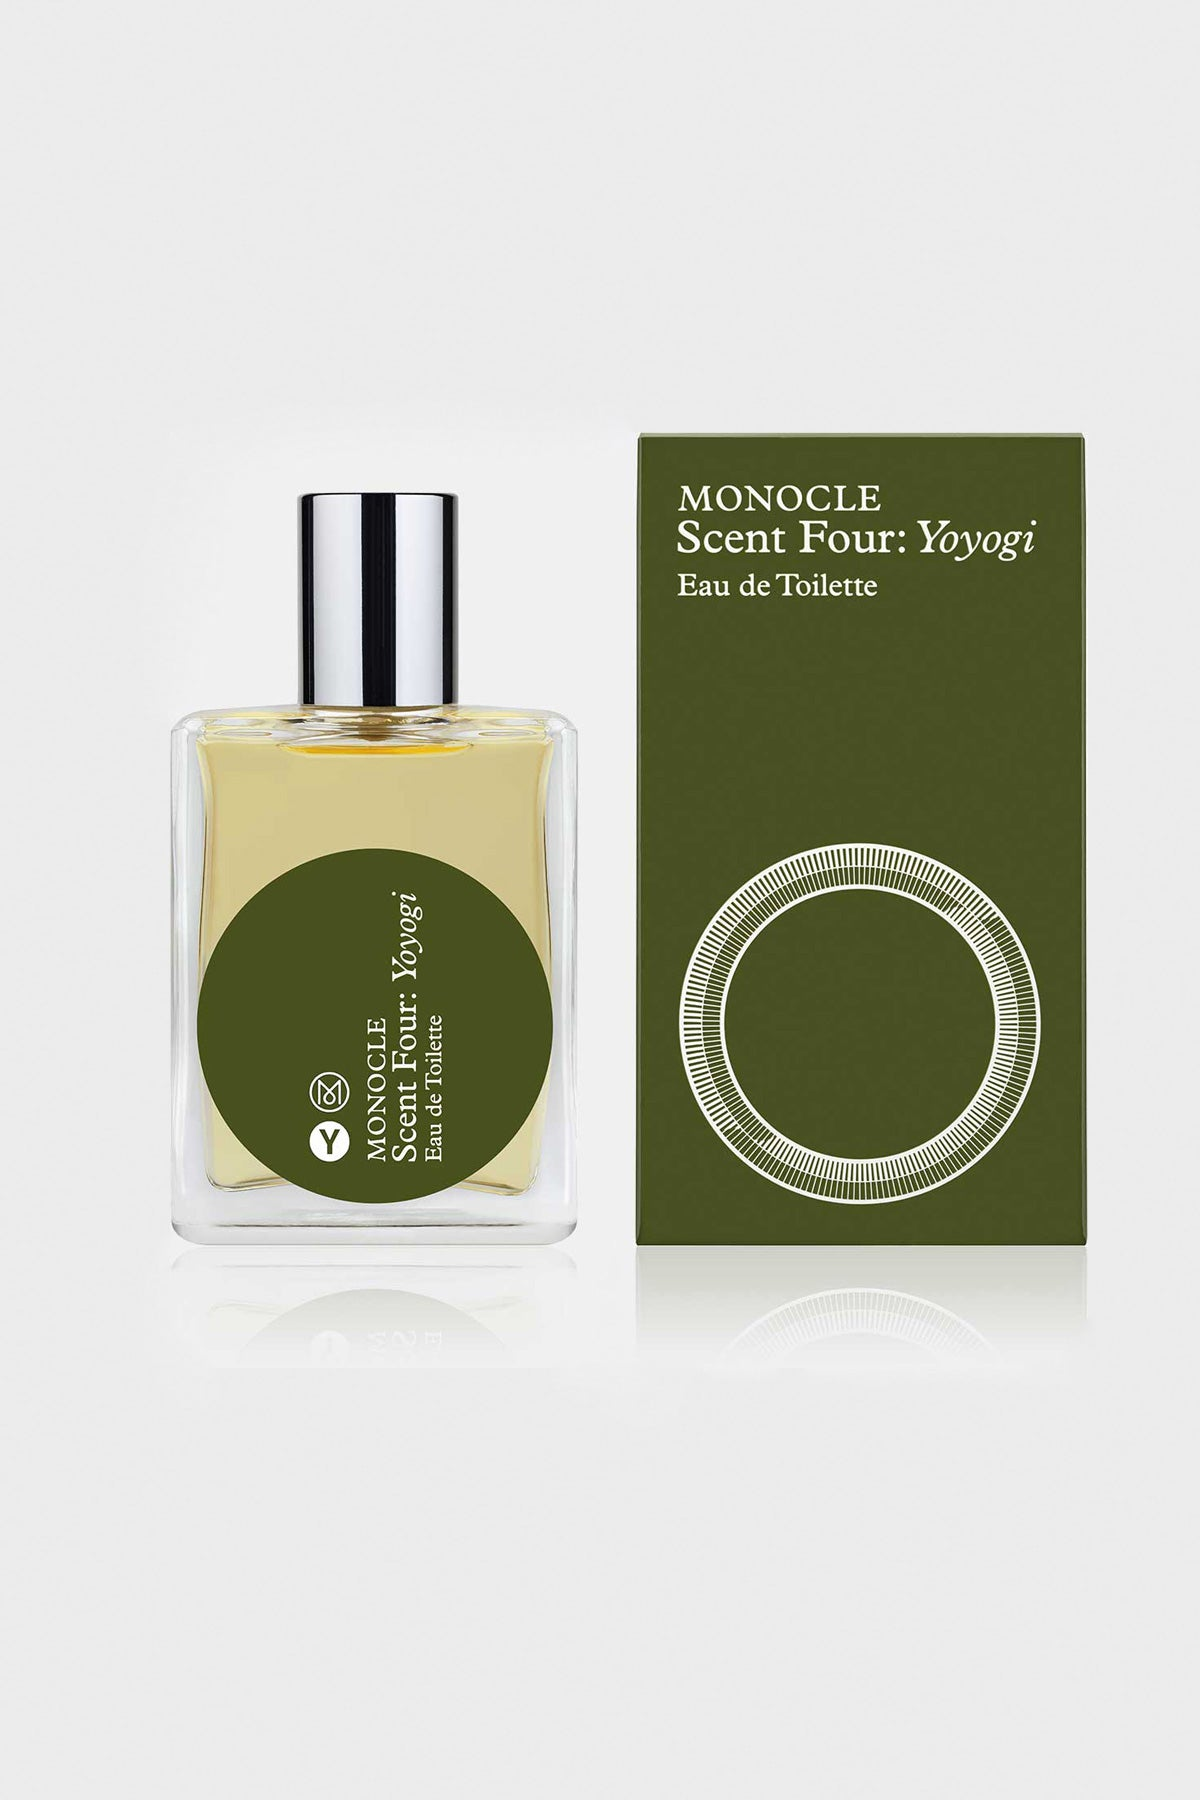 Comme des Garçons PARFUMS - Monocle Scent Four Yoyogi Eau de Toilette - 50ml Natural Spray - Canoe Club